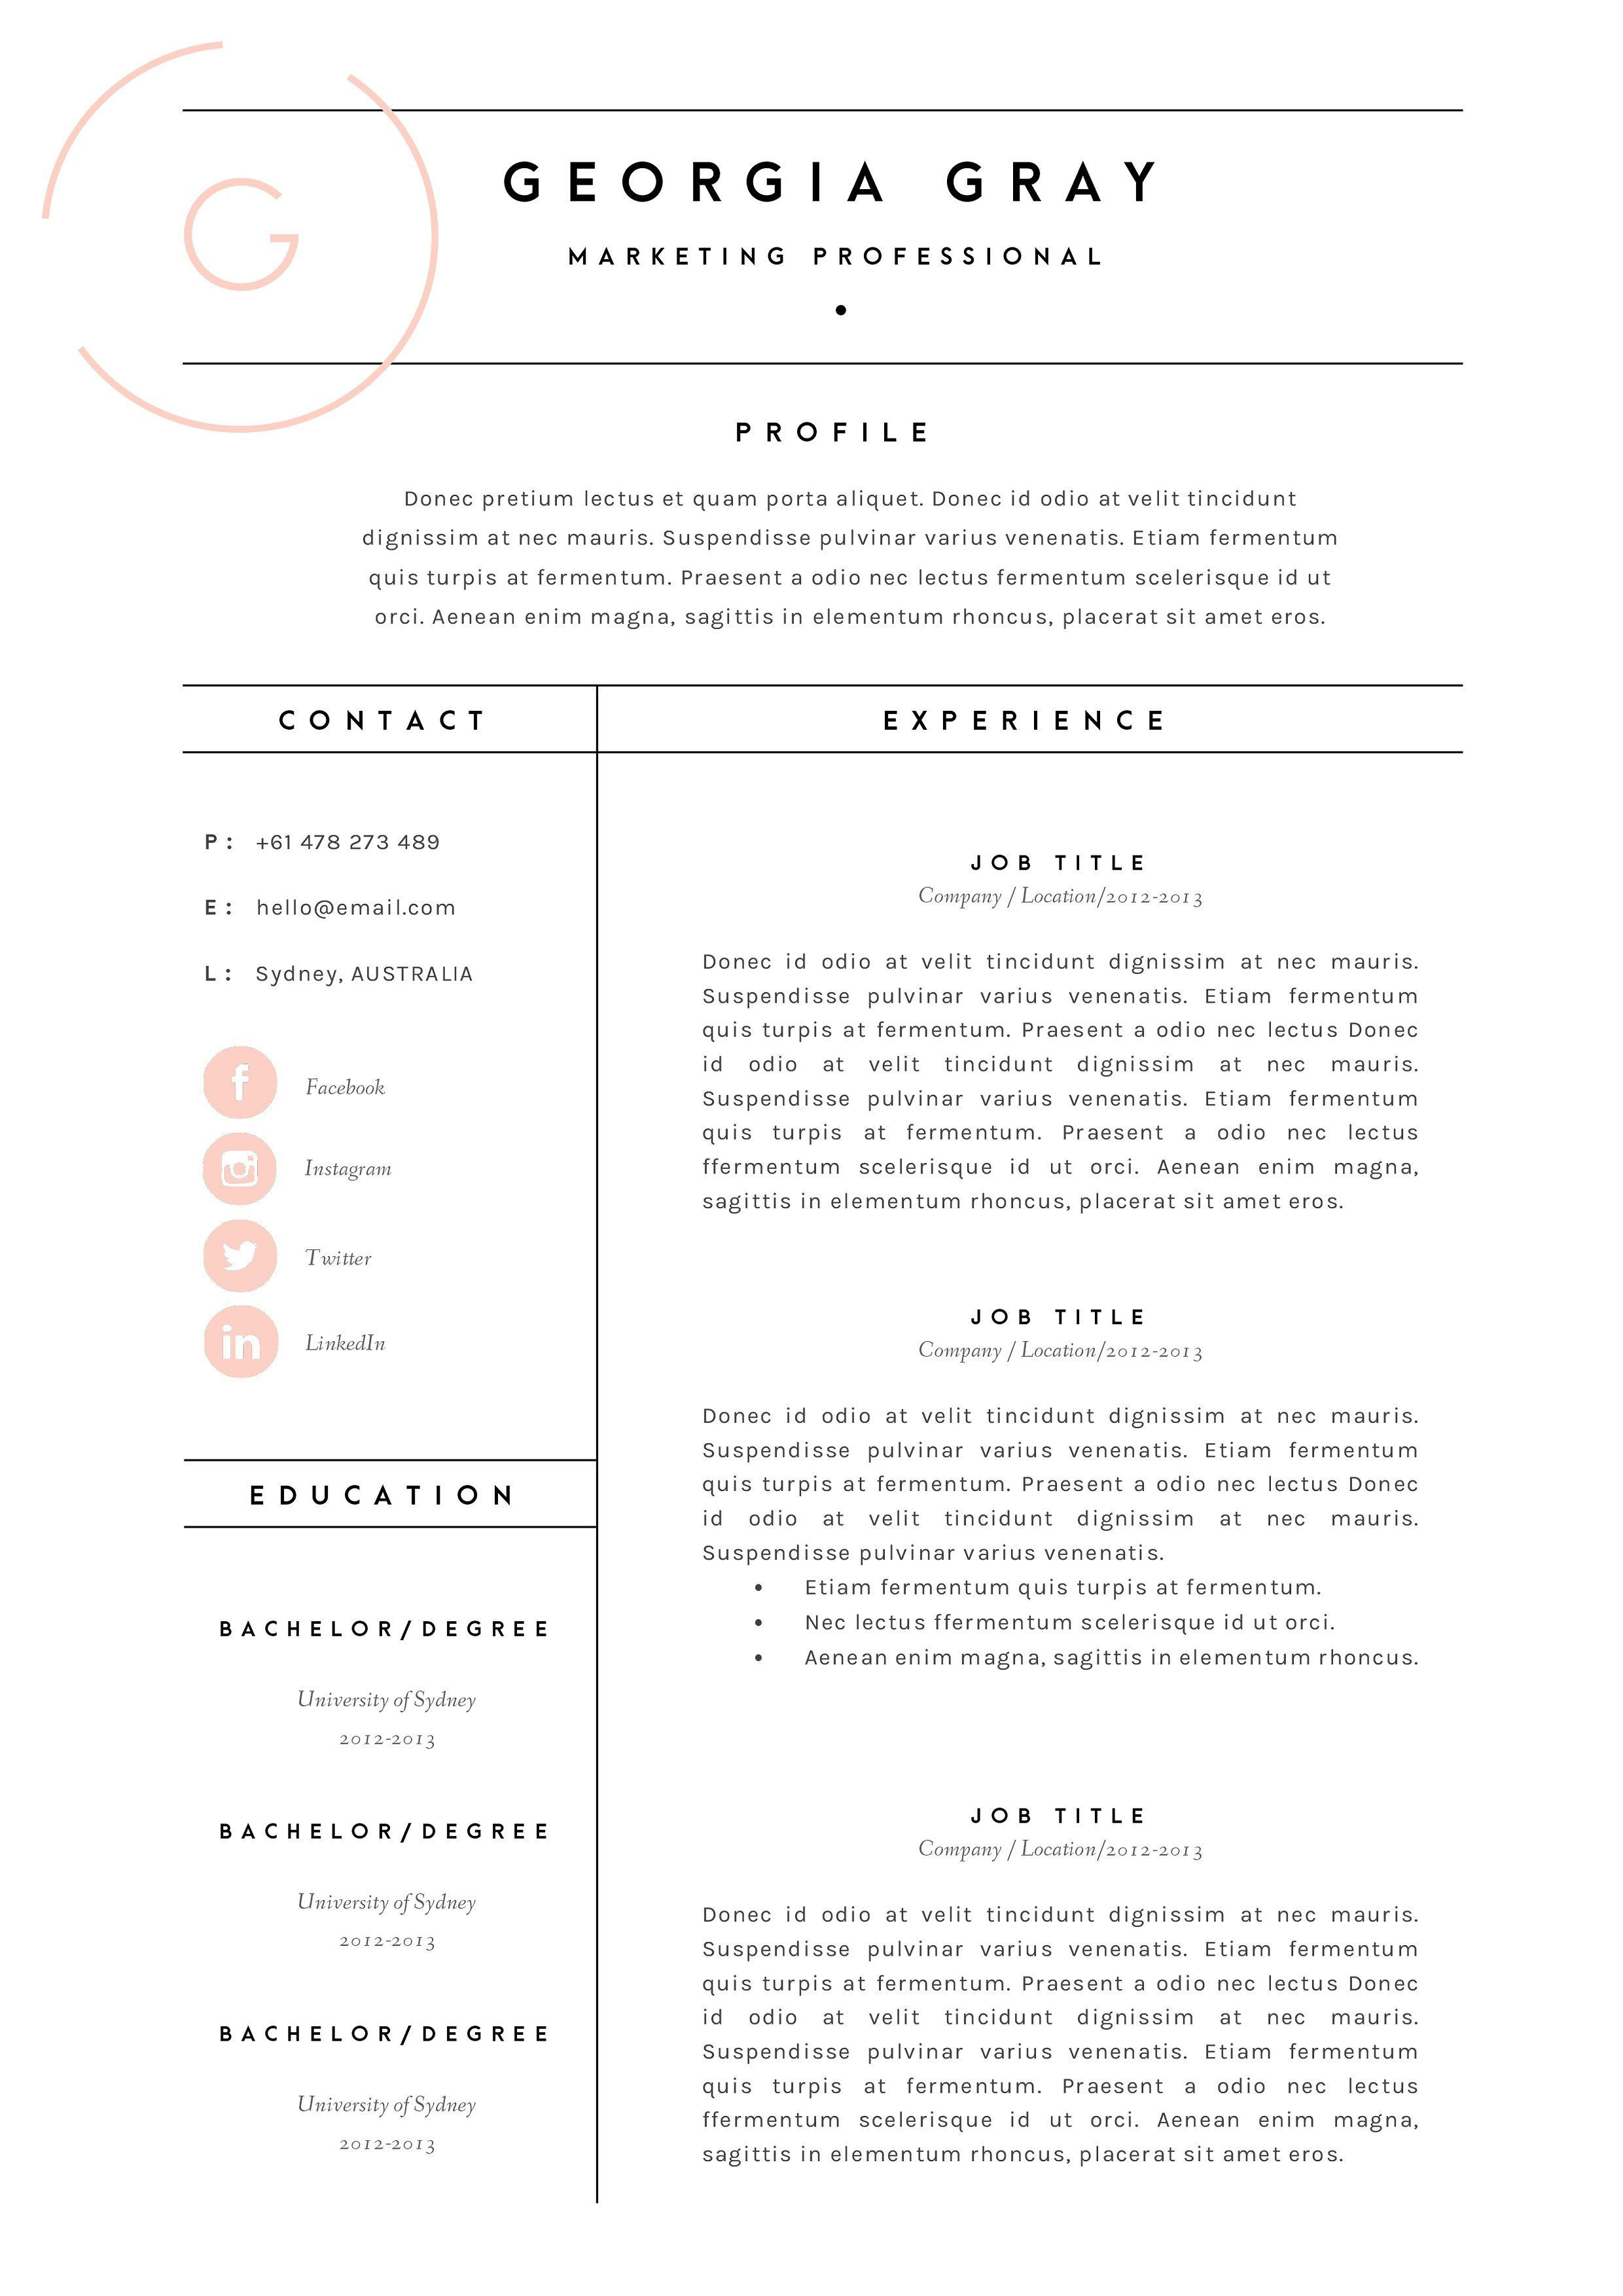 Resume Template 3 Page Cv Template By The Template Depot On Creativemarket Resume Design Layout Resume Layout Resume Design